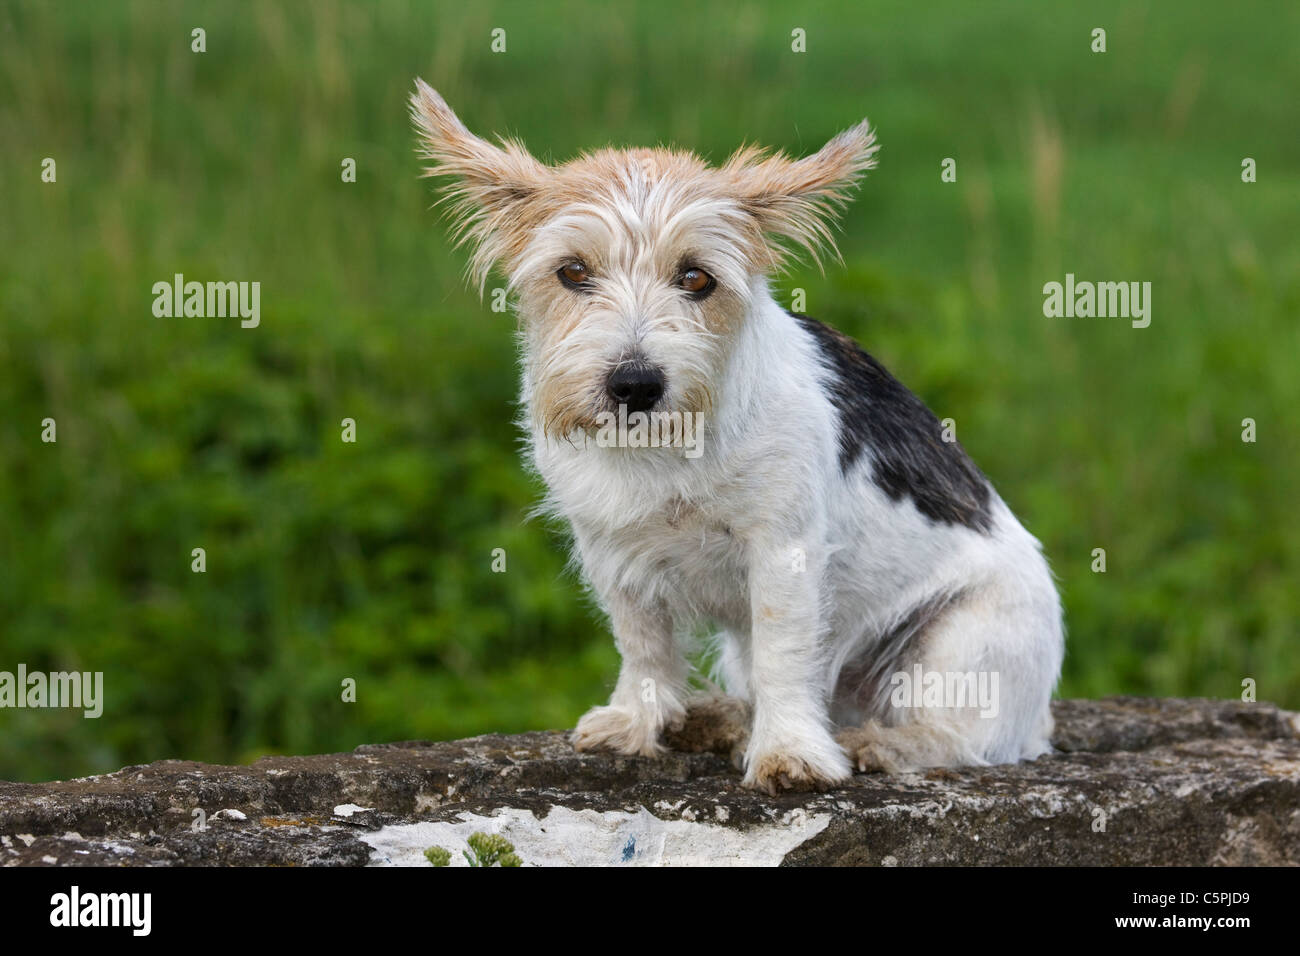 Rough-coated Jack Russell terrier (Canis lupus familiaris) in garden - Stock Image